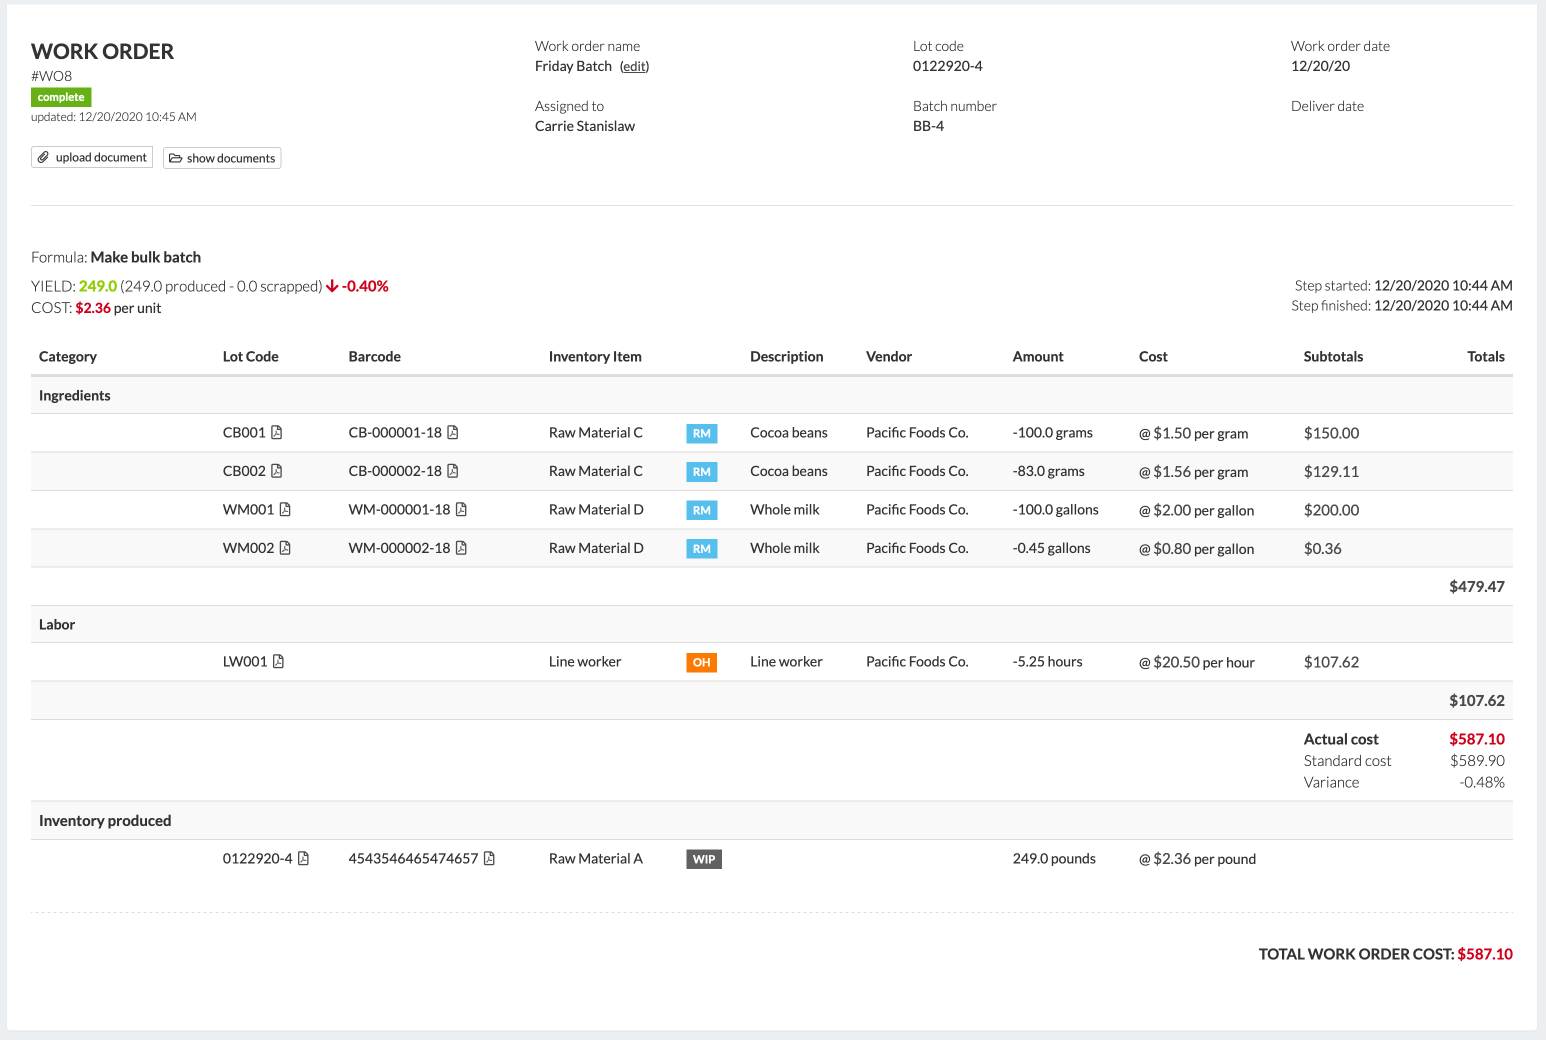 Wherefour  screenshot: Full batch and variance costing + blended material. Produce virtually any product through flexible formula building blocks and Wherefour will track, trace and maintain lot codes for everything in inventory. You always know what you have & where it went.